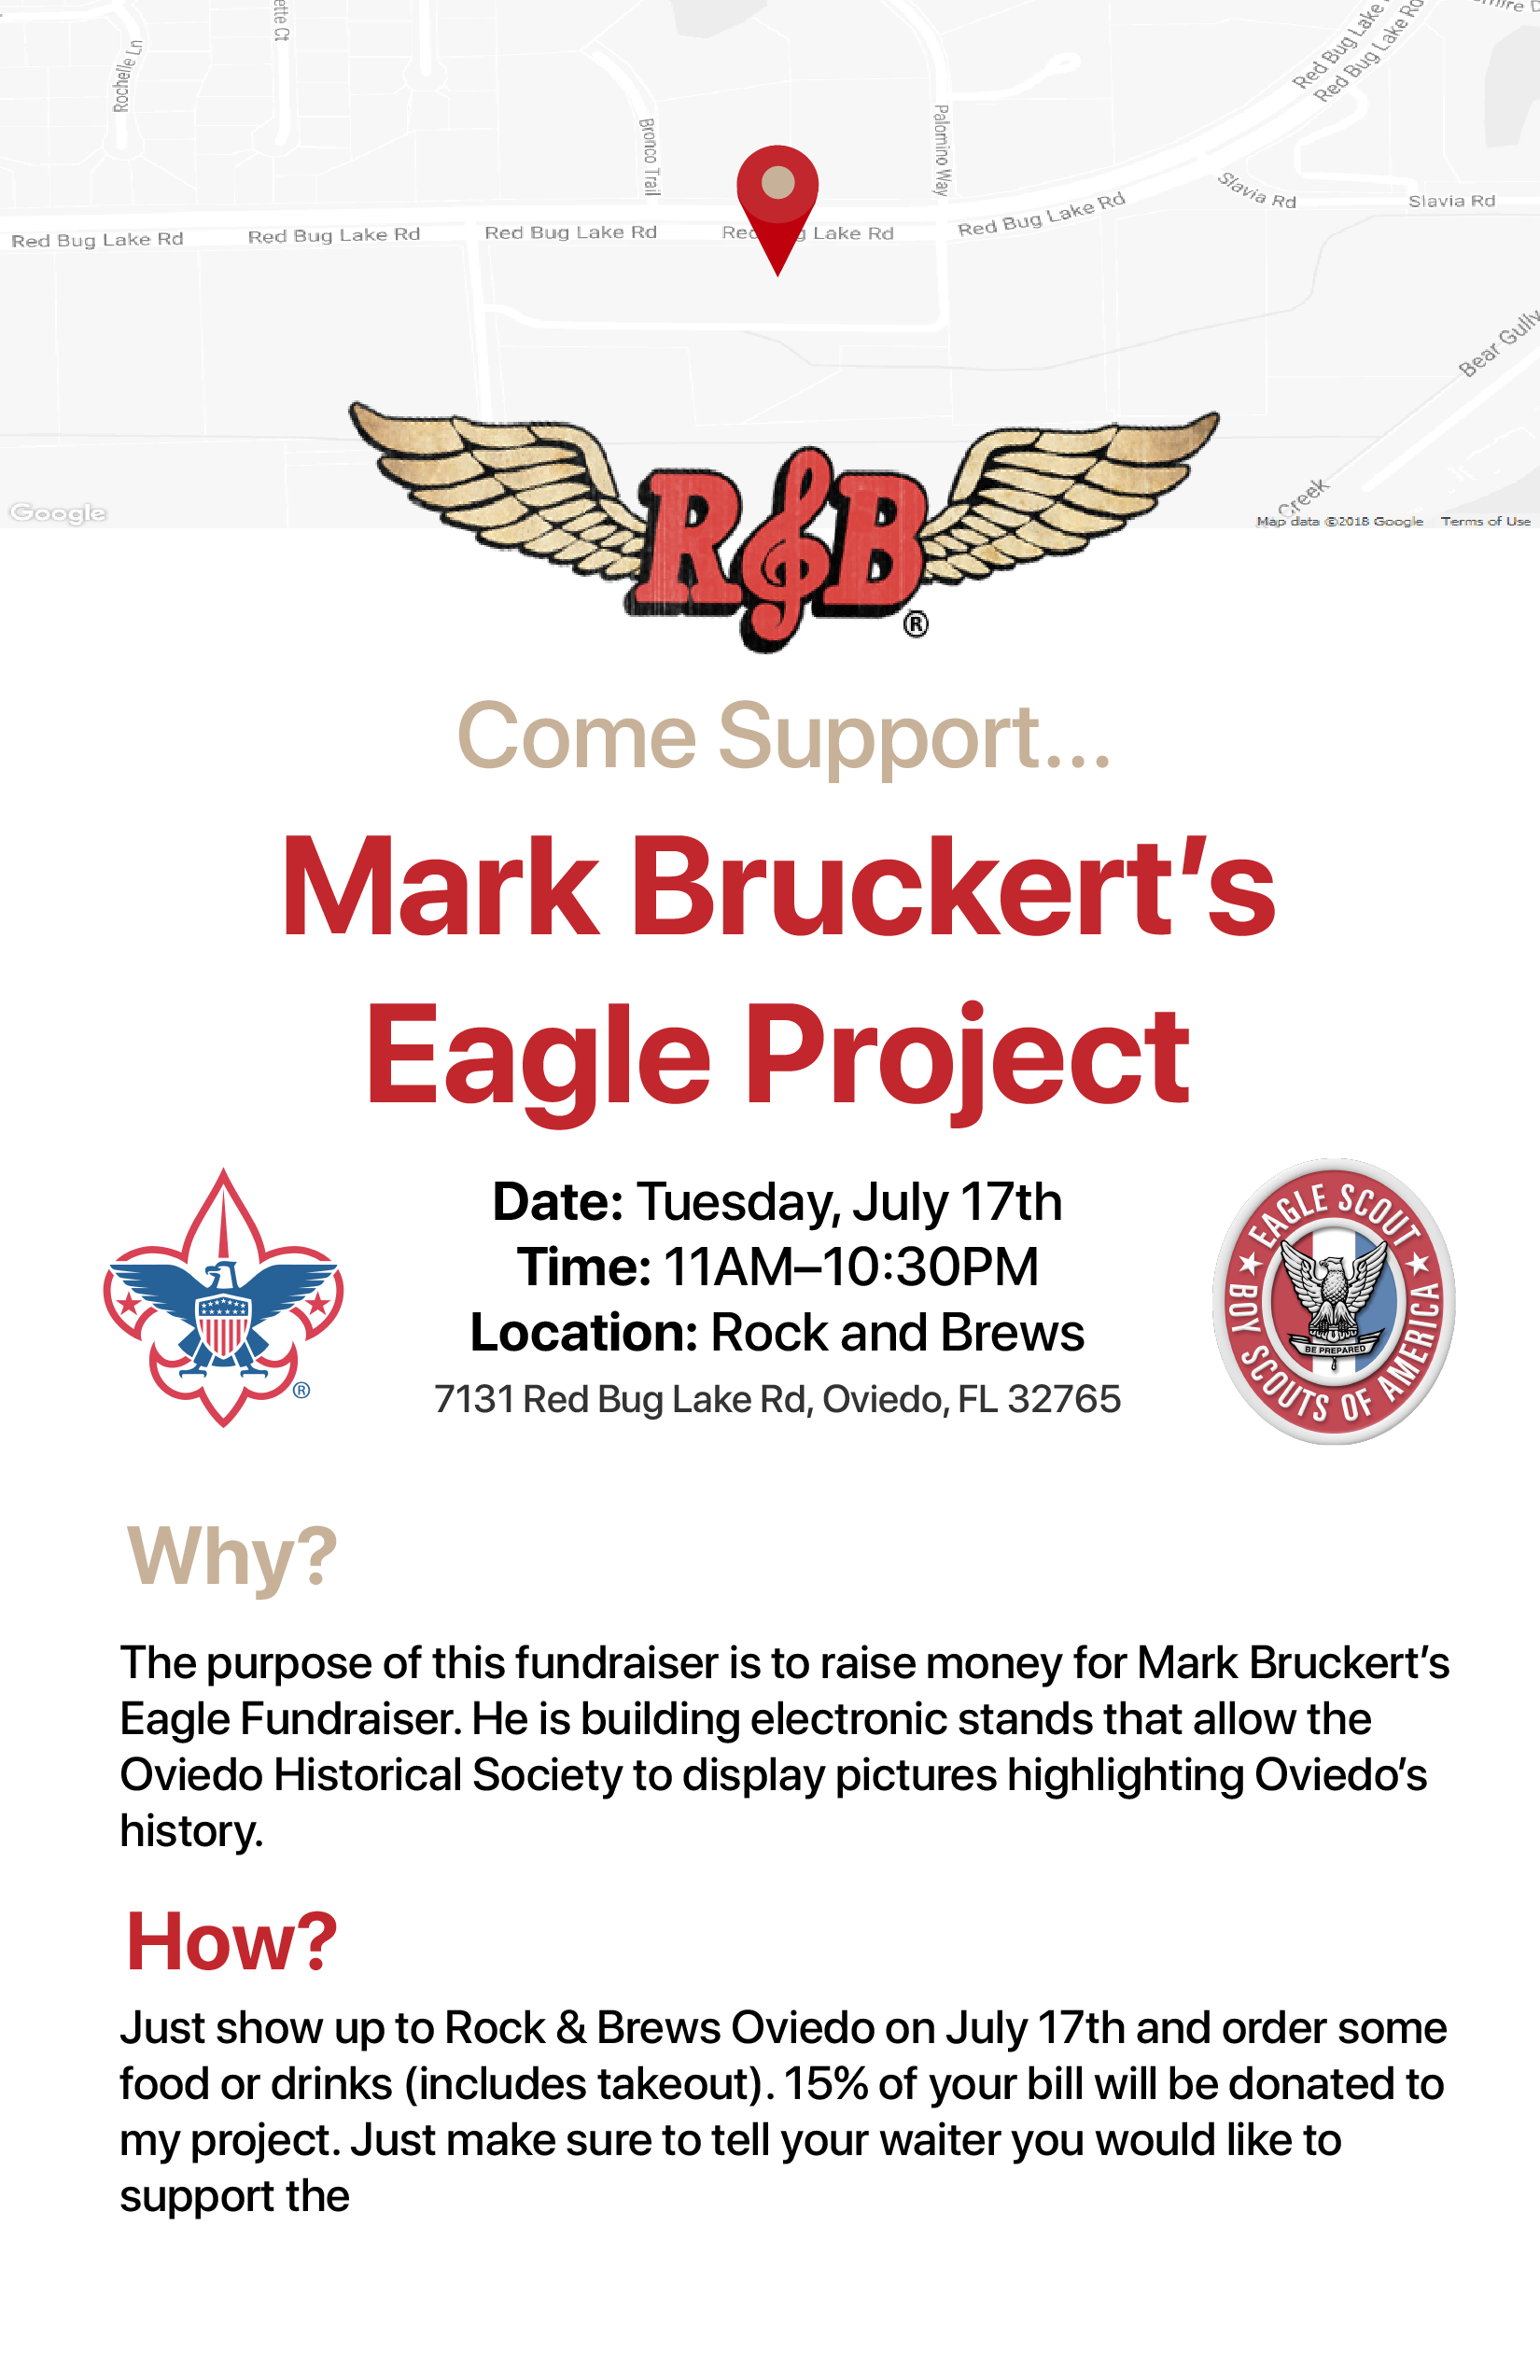 The Project Flyer - Feel free to learn more about the project from this poster or distribute it to your friends and family.